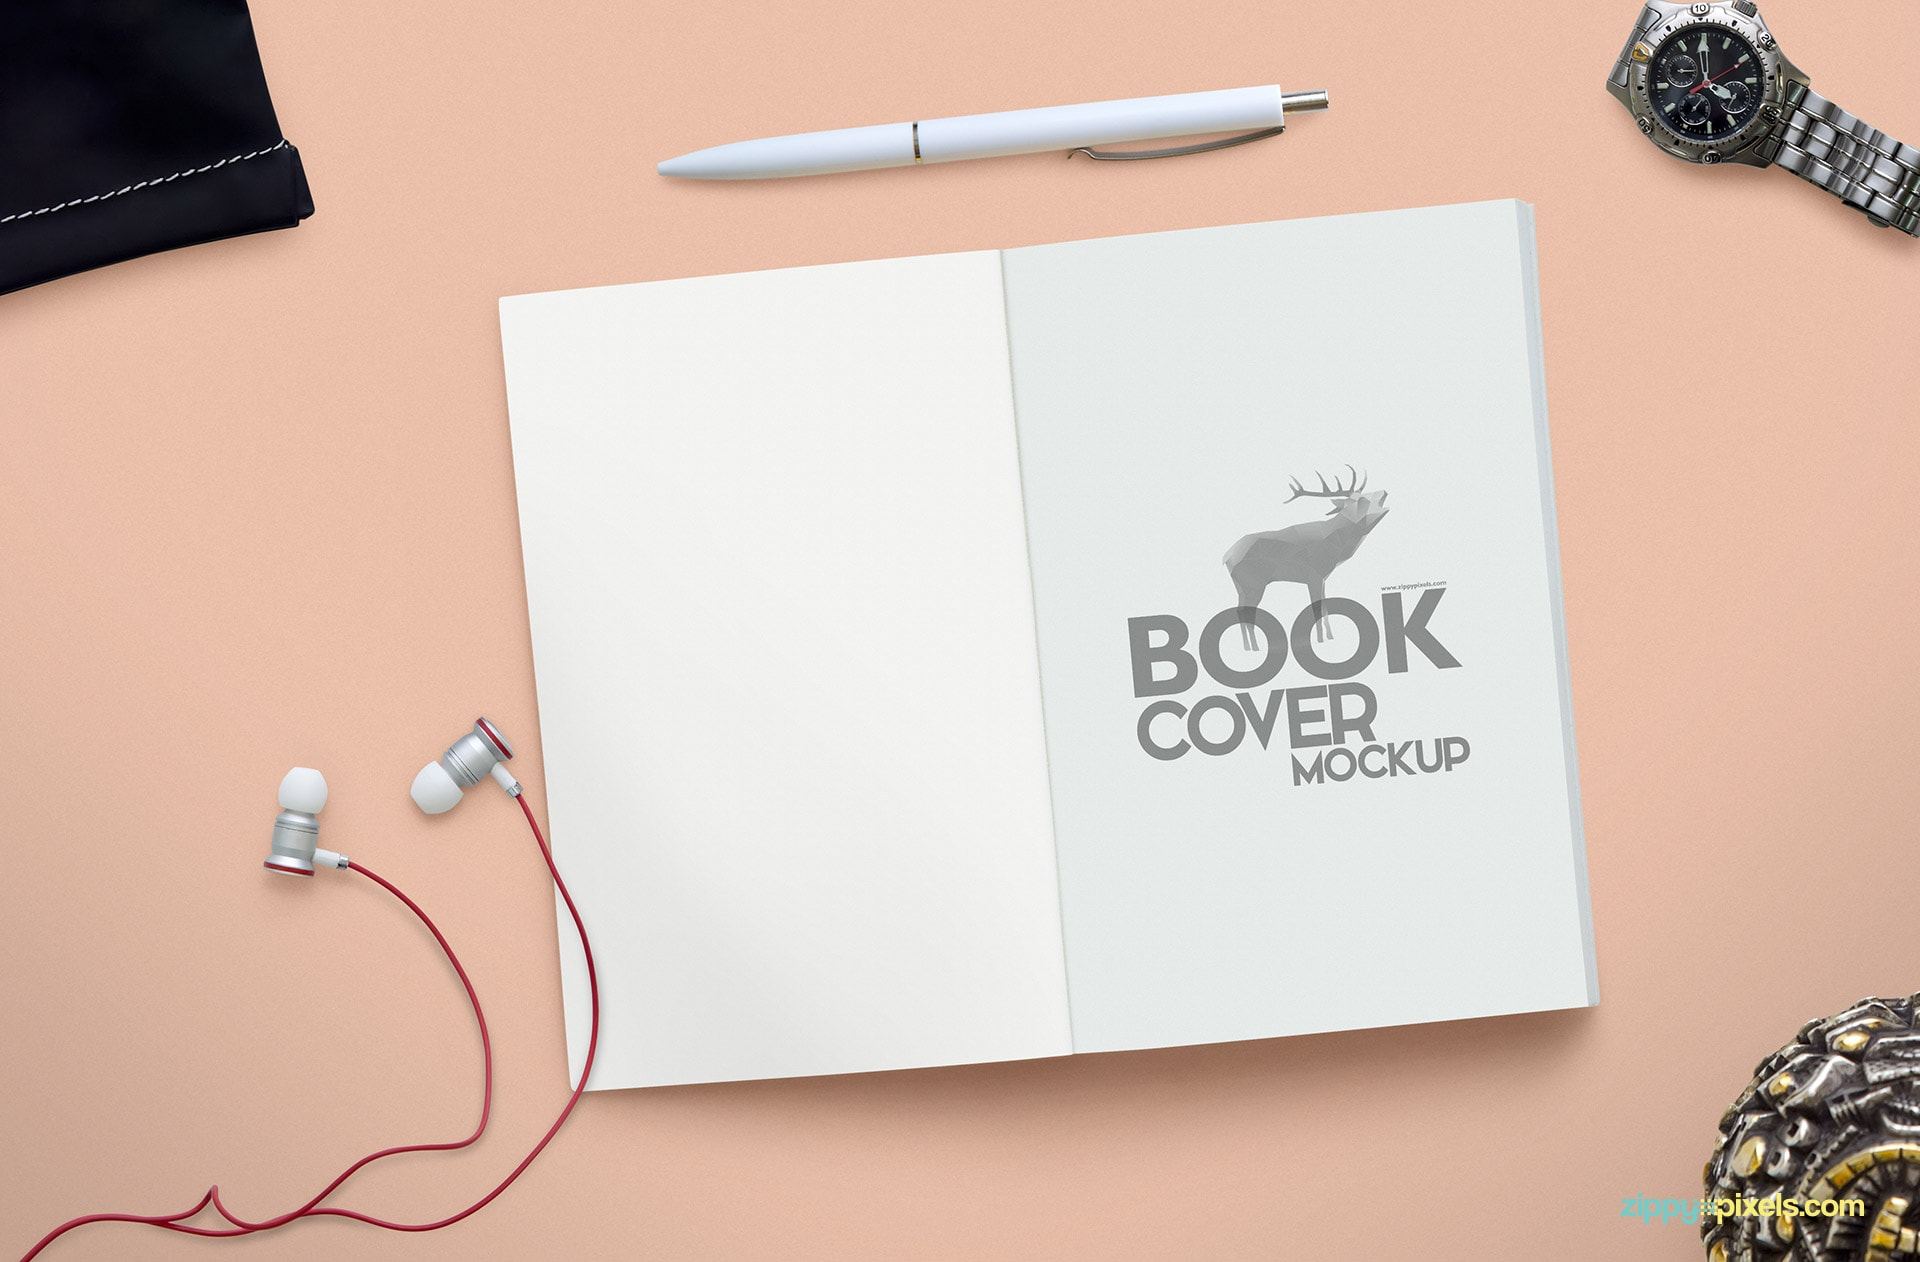 Open book psd mockup for title cover with ear phones, wristwatch, ball pen, pouch & jewelry box